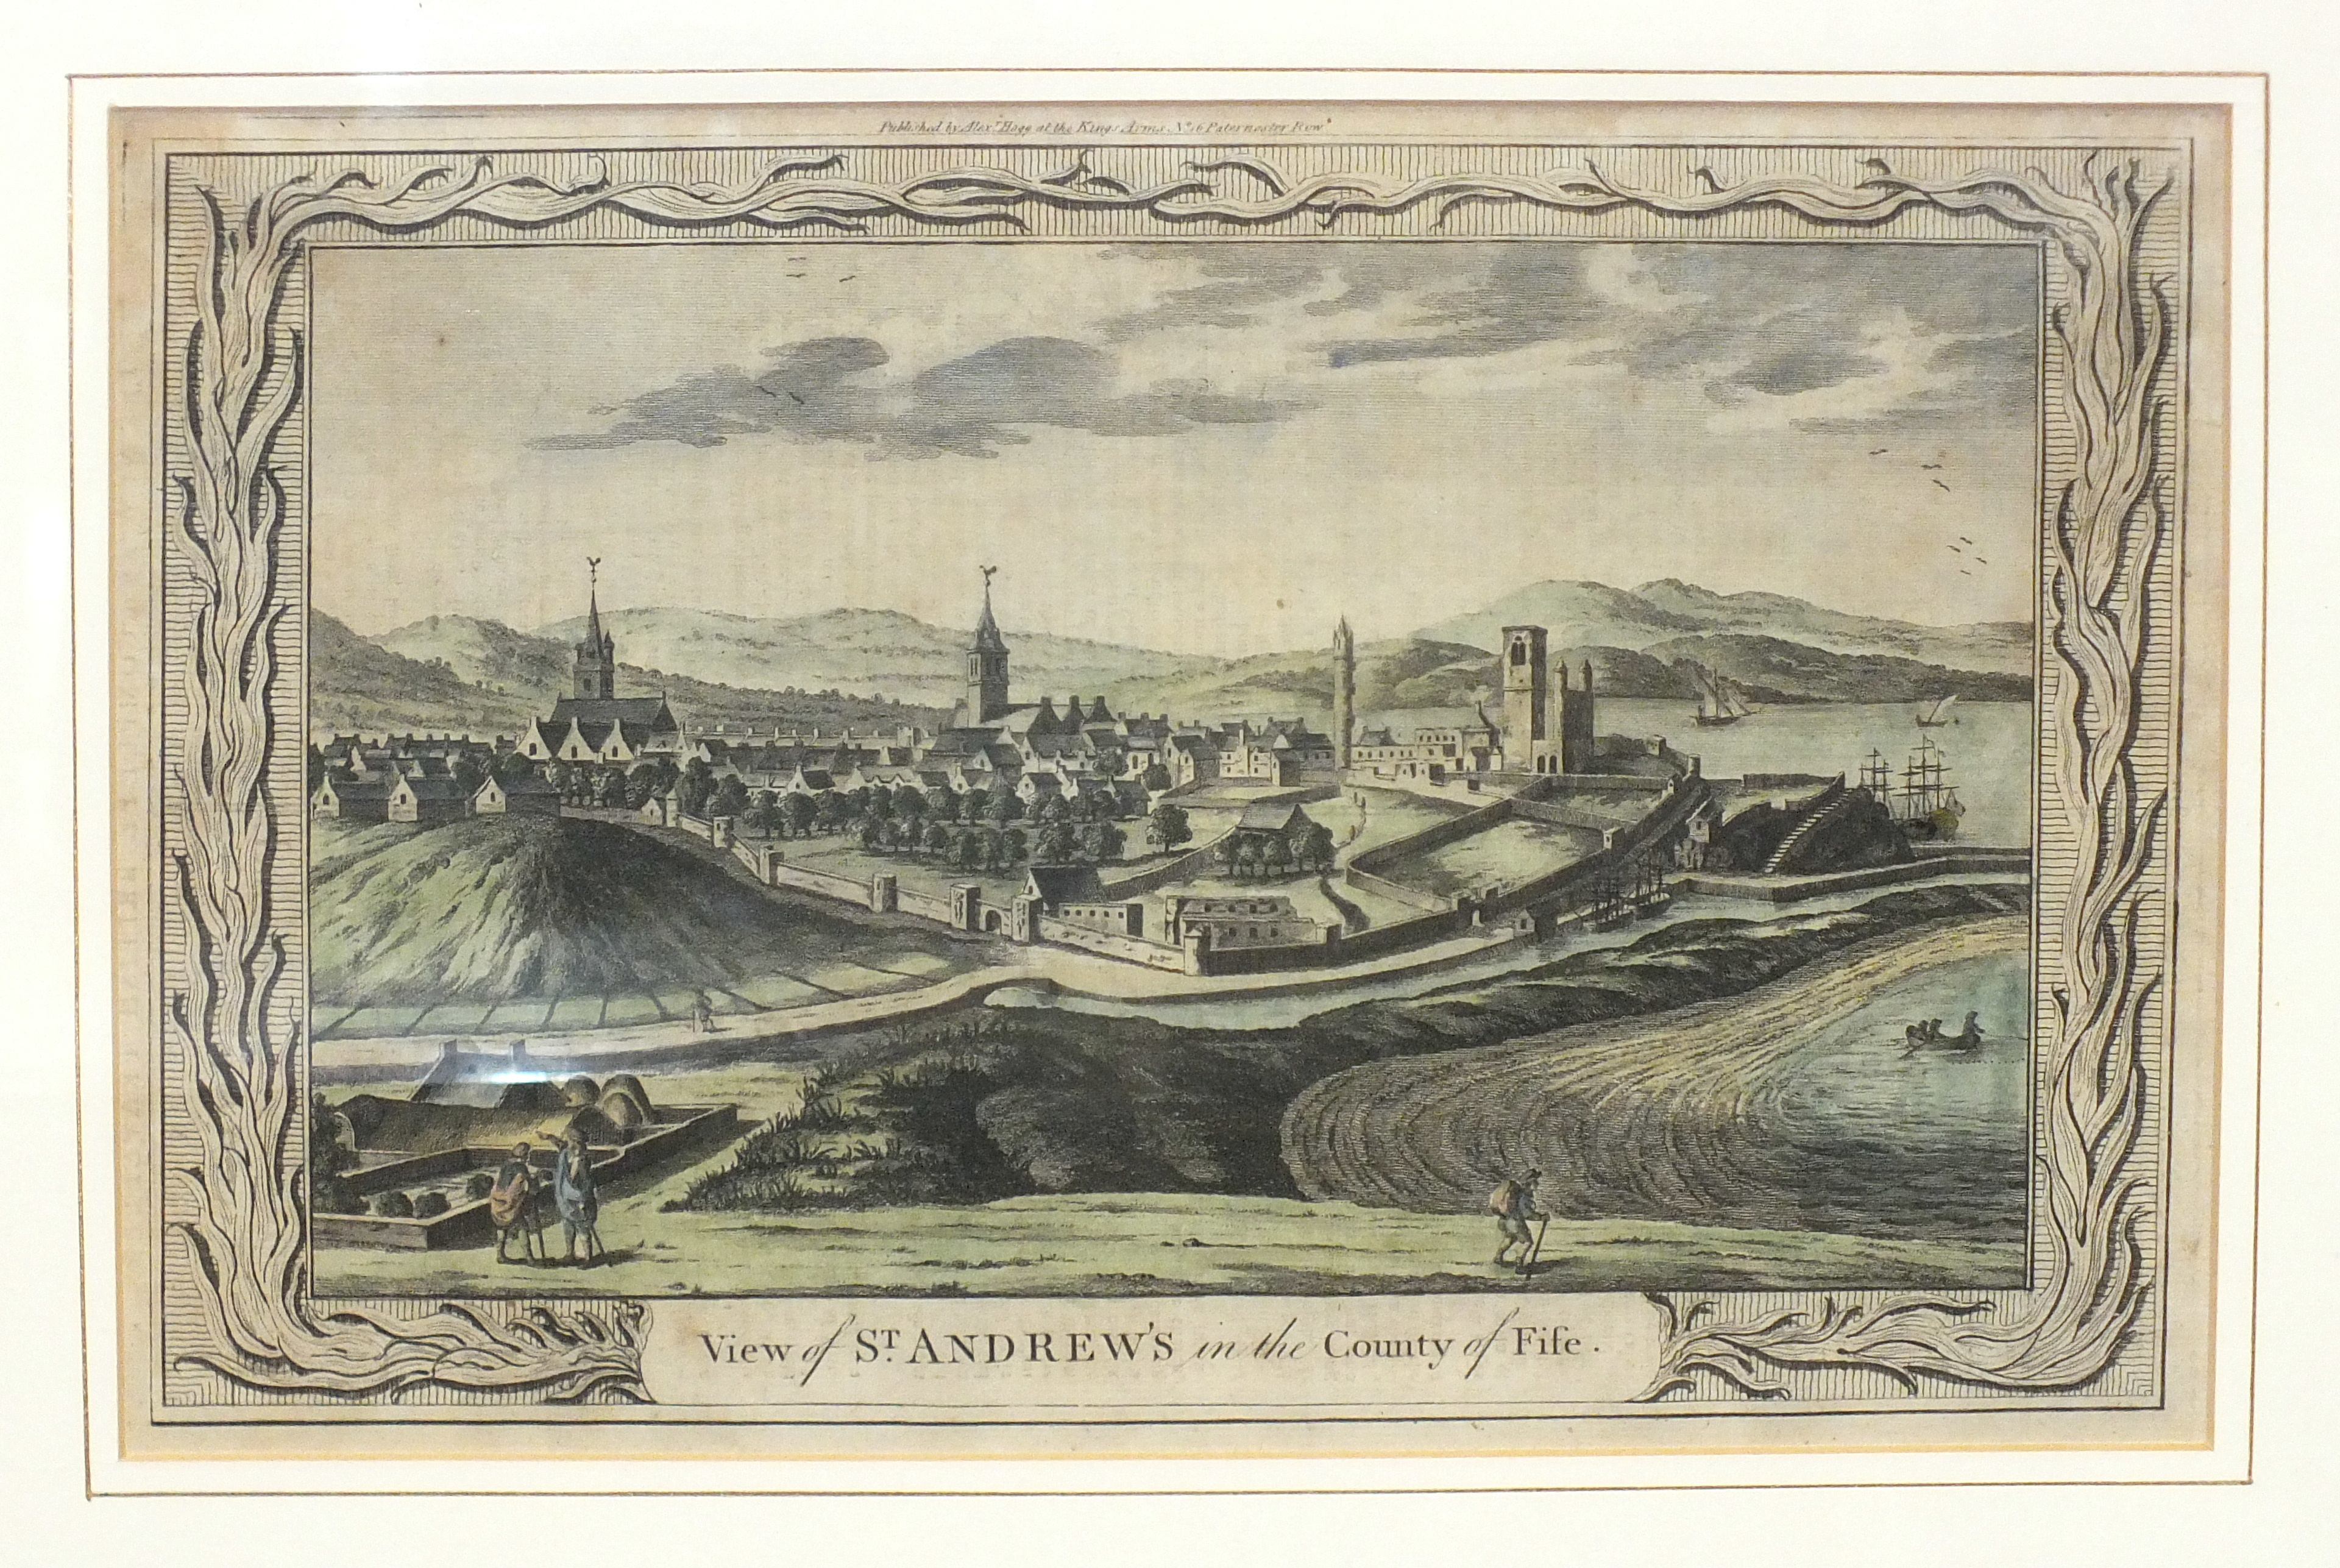 A 19th century hand-coloured engraving 'View of St Andrews in the County of Fife', 23 x 35cm.